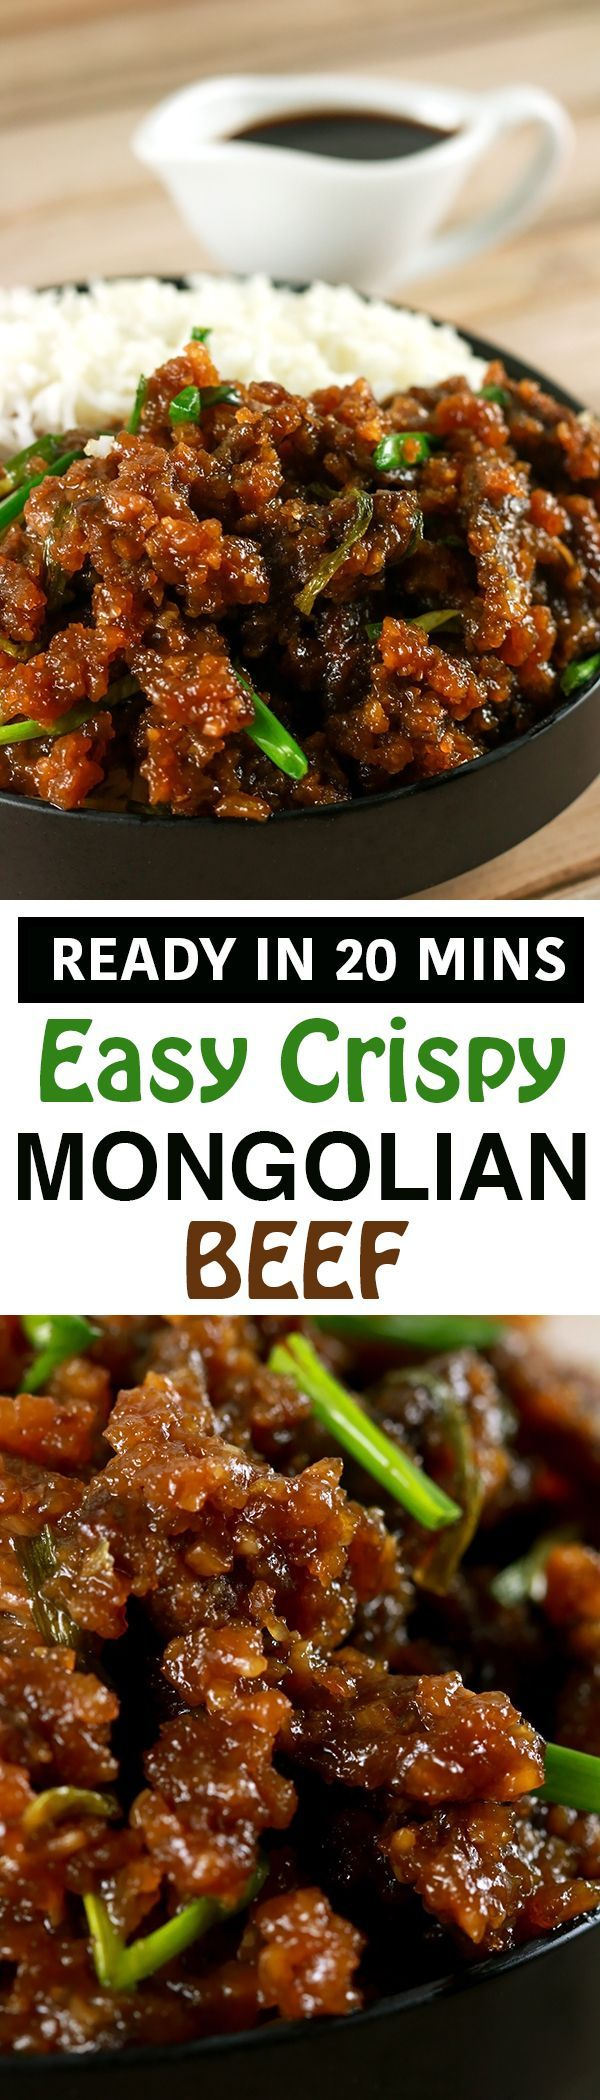 This Mongolian Beef recipe is super easy to make and uses simple readily available ingredients! Whip this up in under 20 minutes and have the perfect mid-week dinner meal!